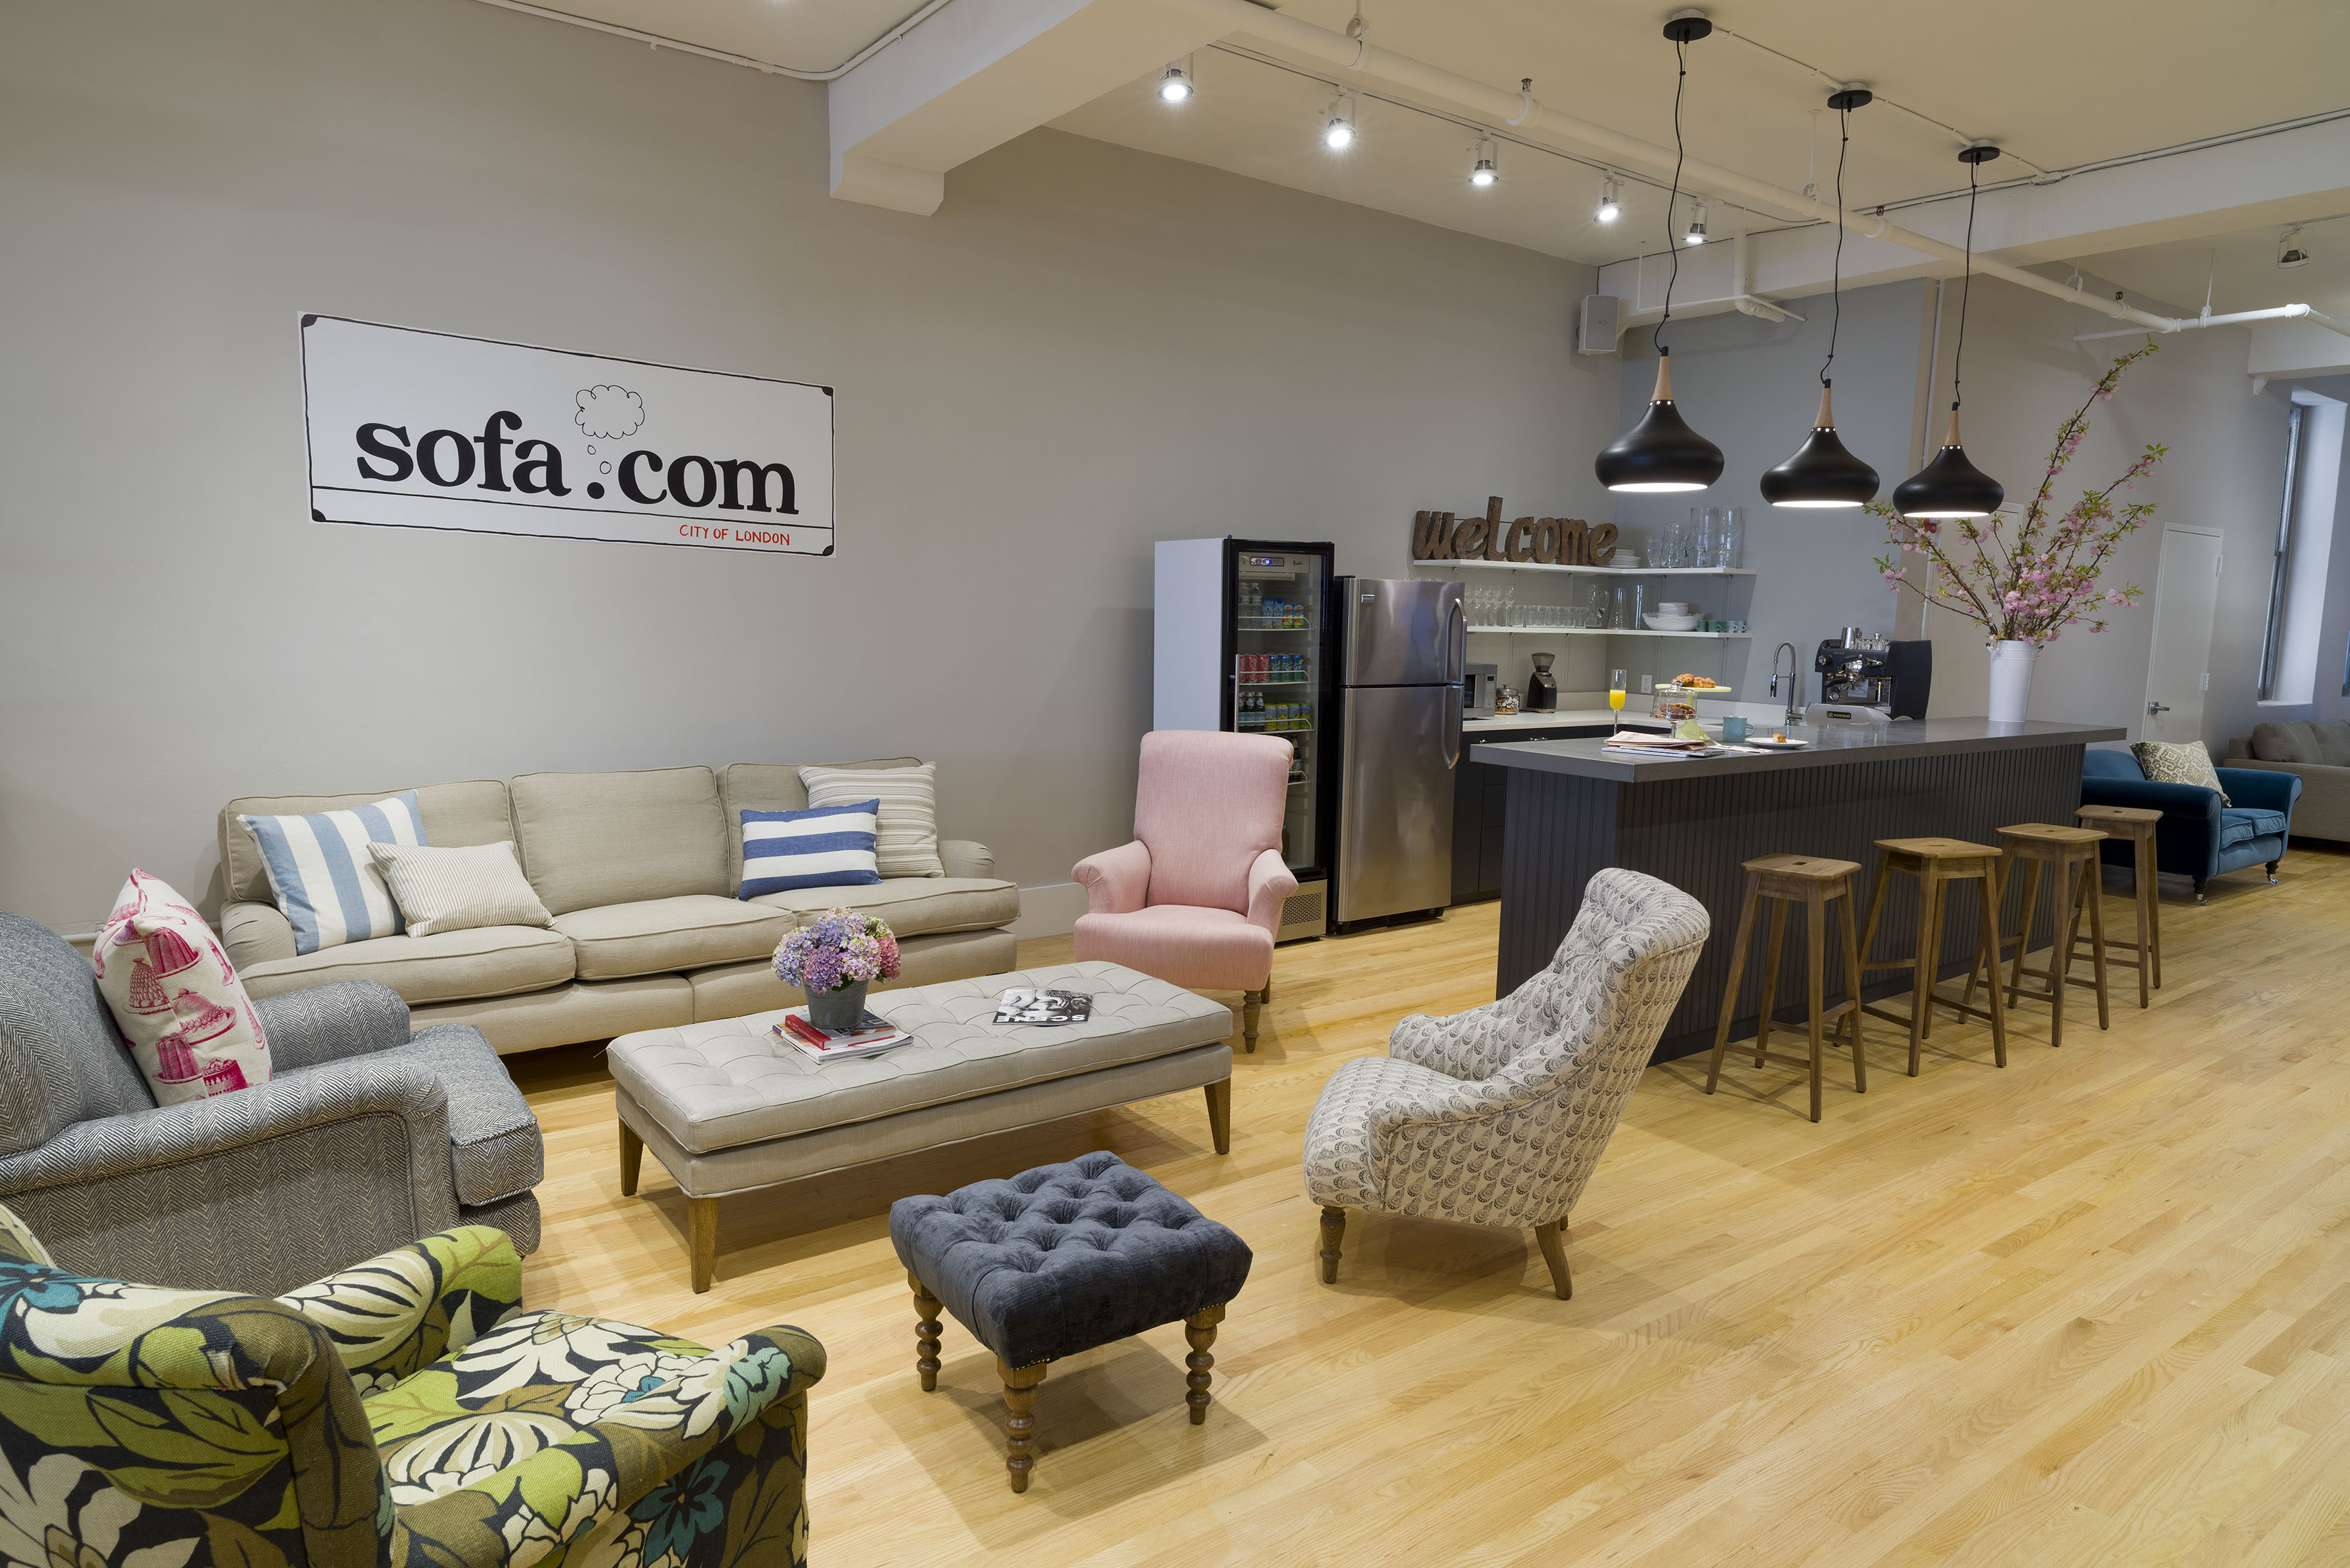 Sofa.com takes innovative approach to furniture retail